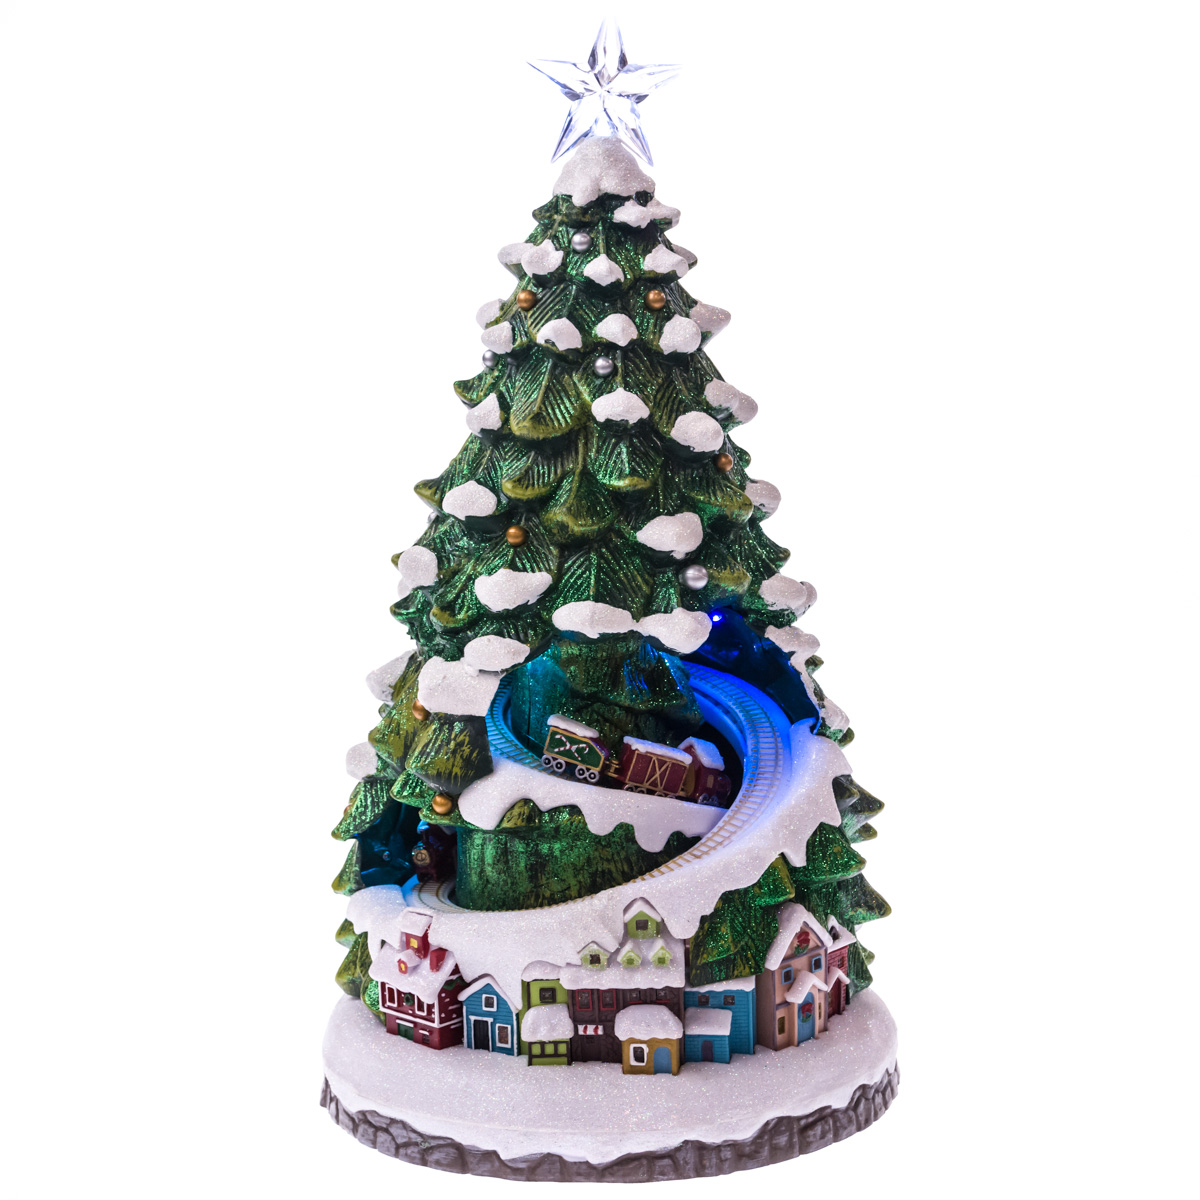 led village christmas tree scene collections traditional christmas cracker barrel old country store